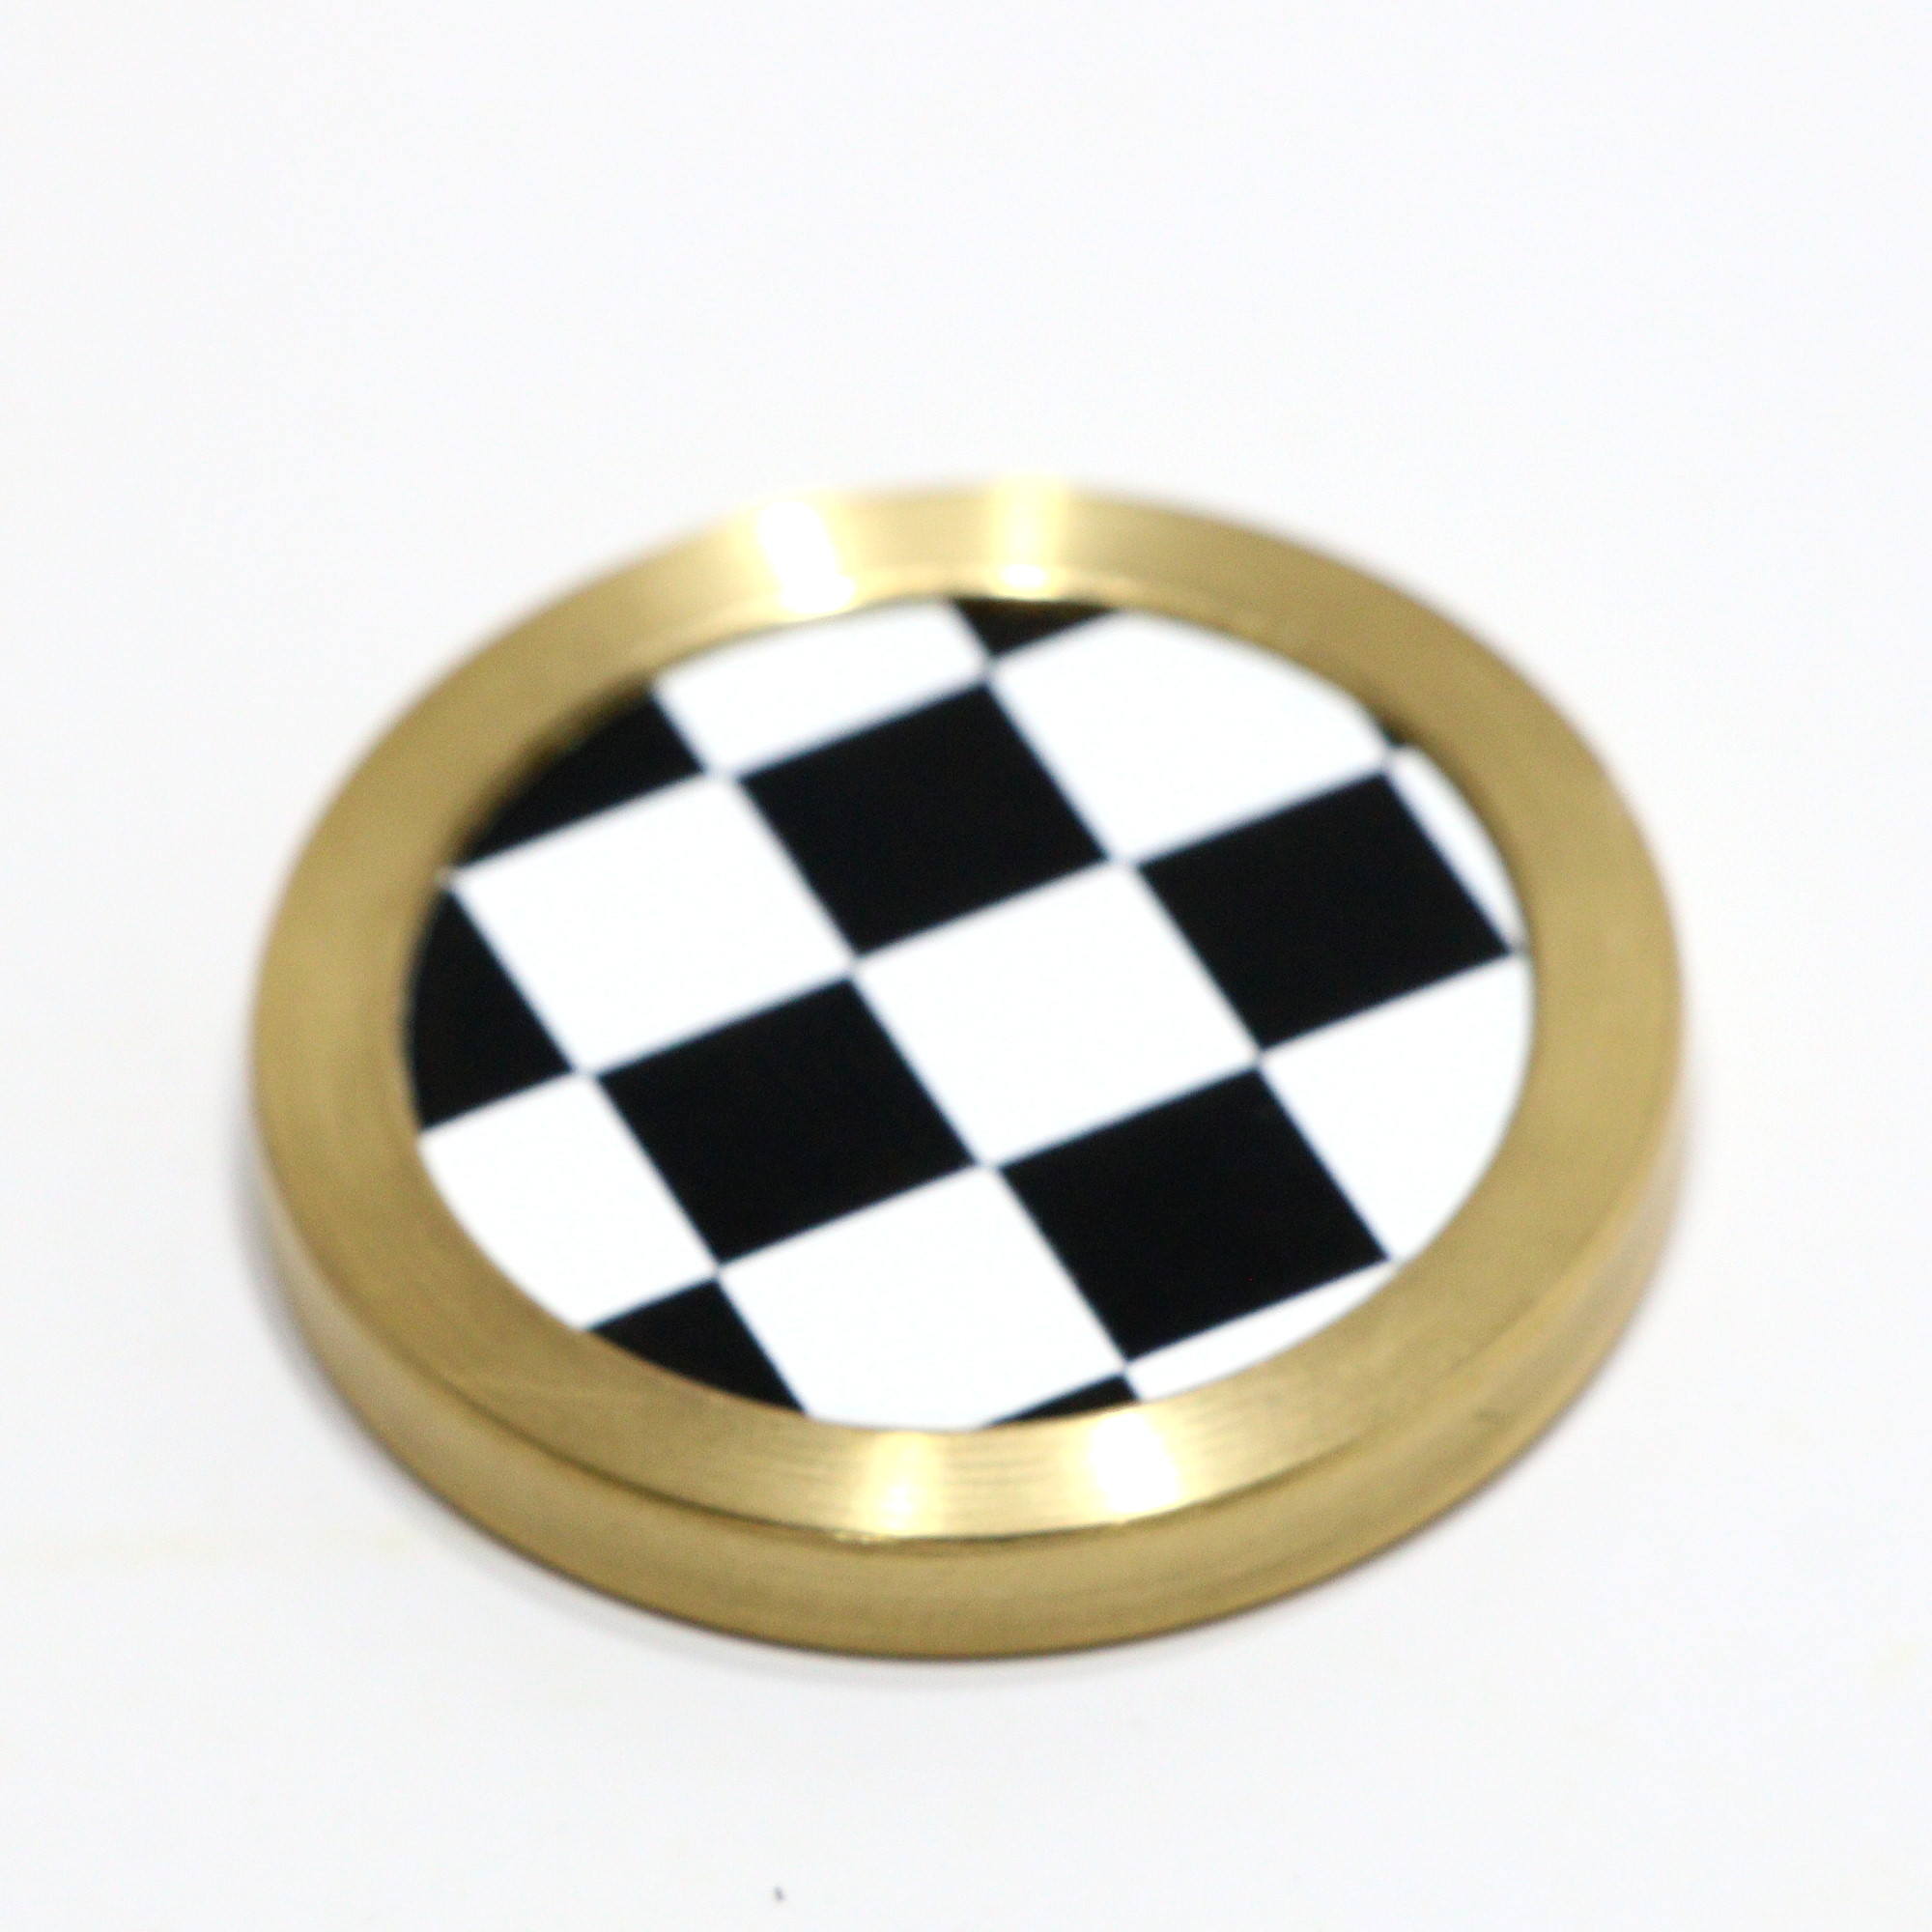 Checker Chip by Per Clausen